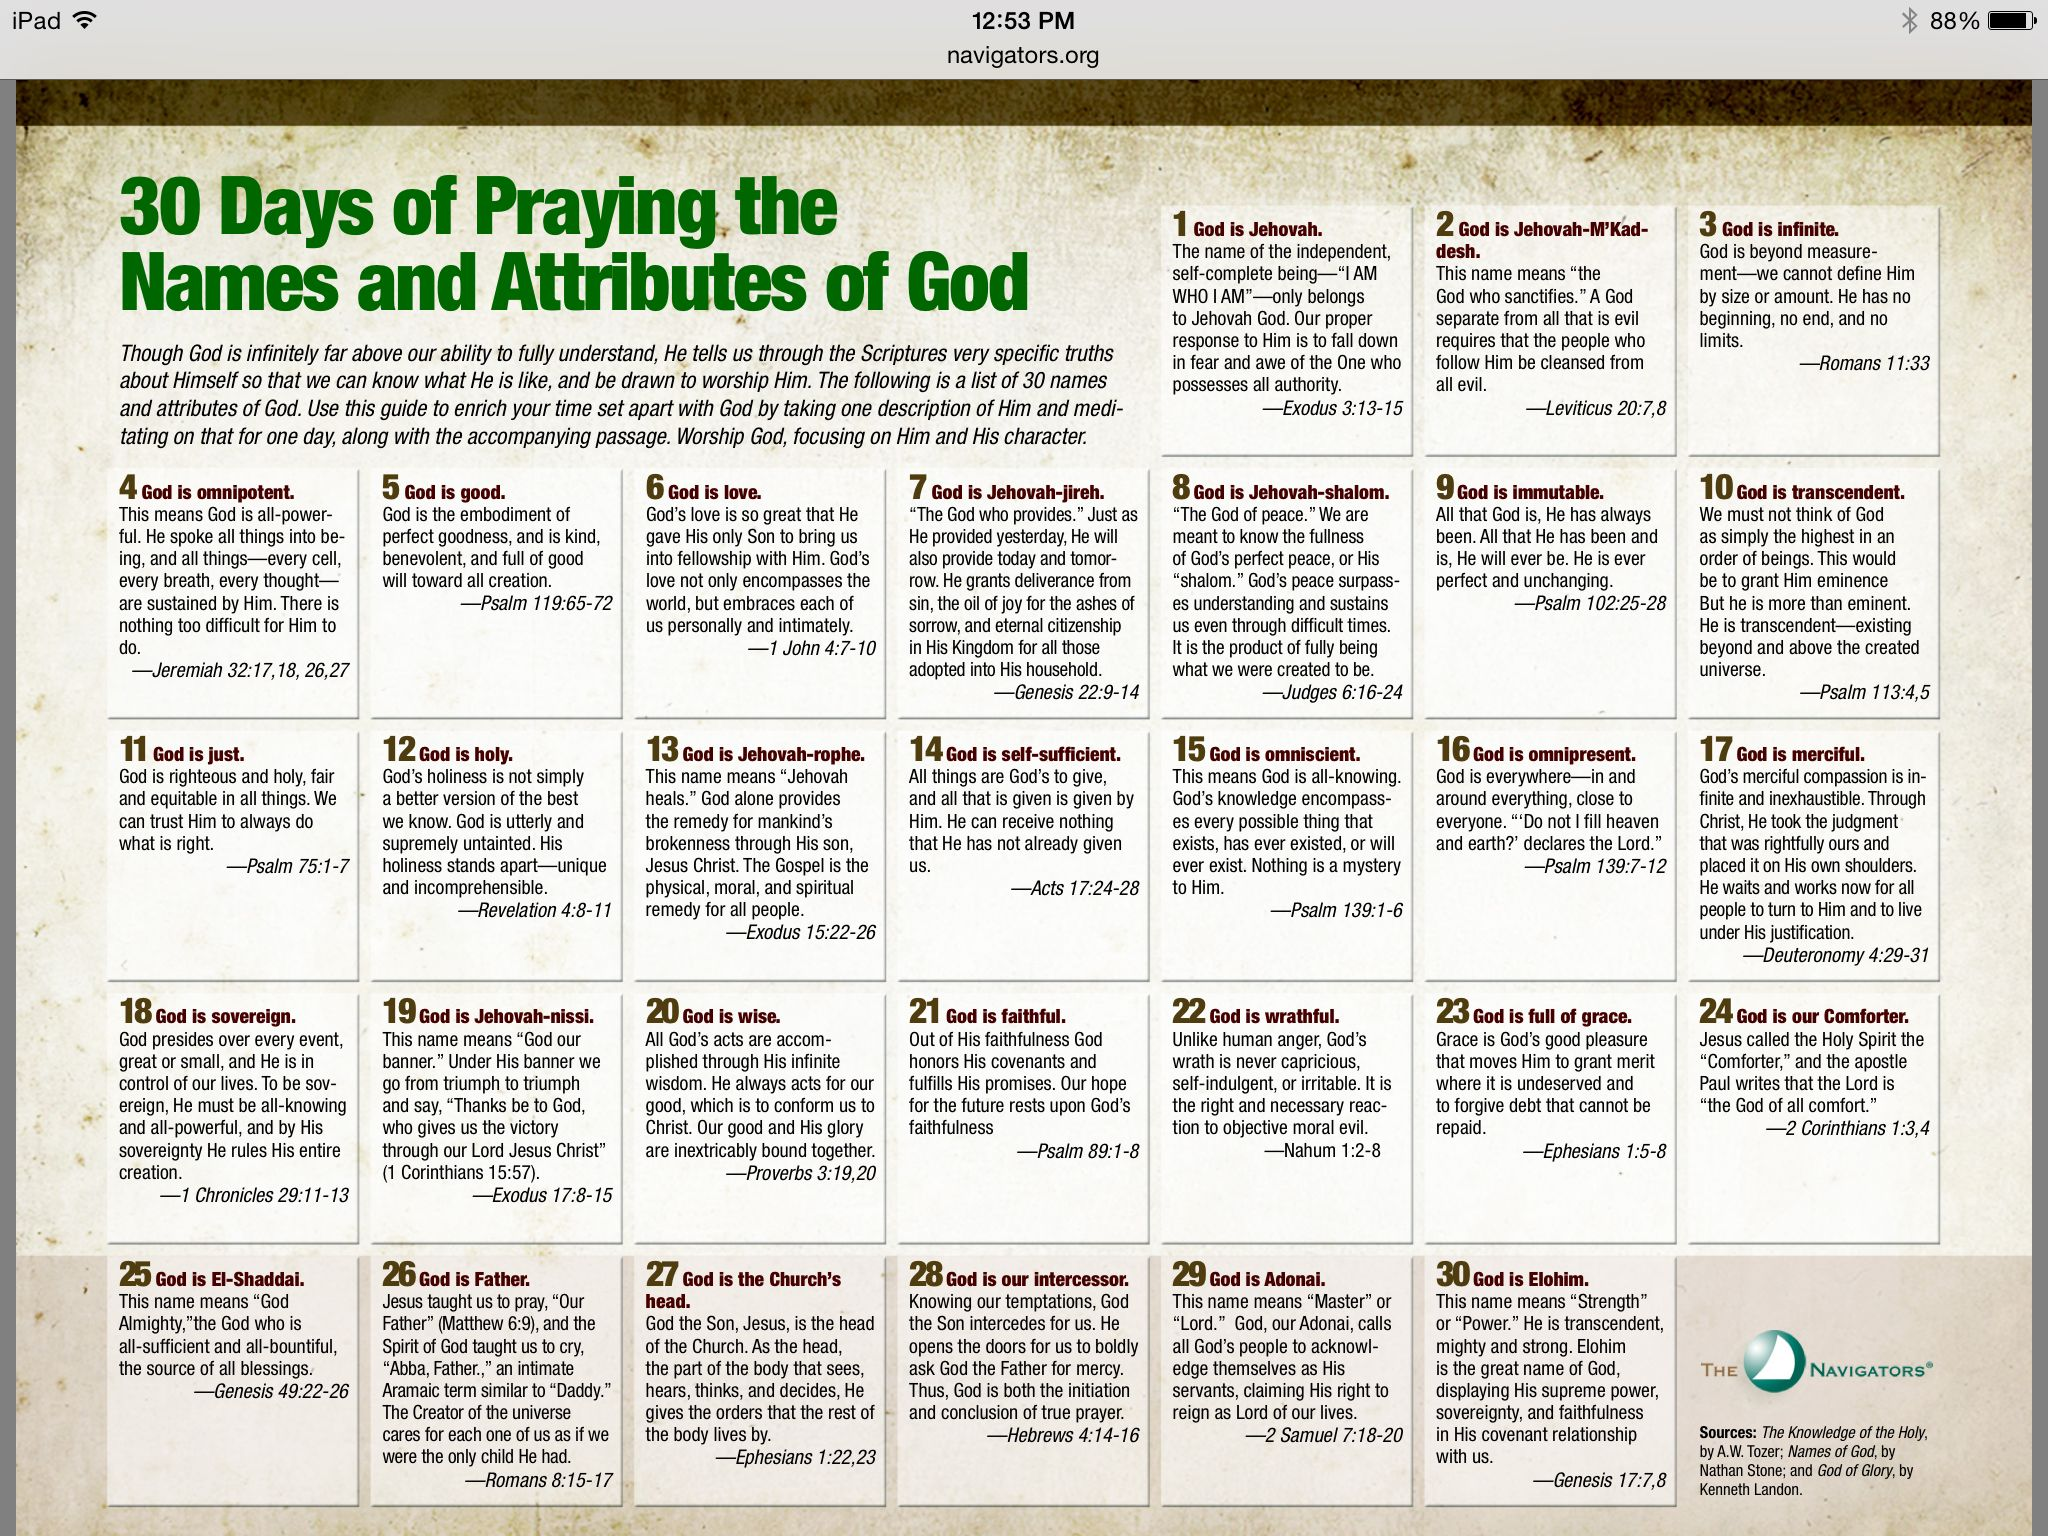 Pin by Audrey Reed on Prayer | Attributes of god, Bible